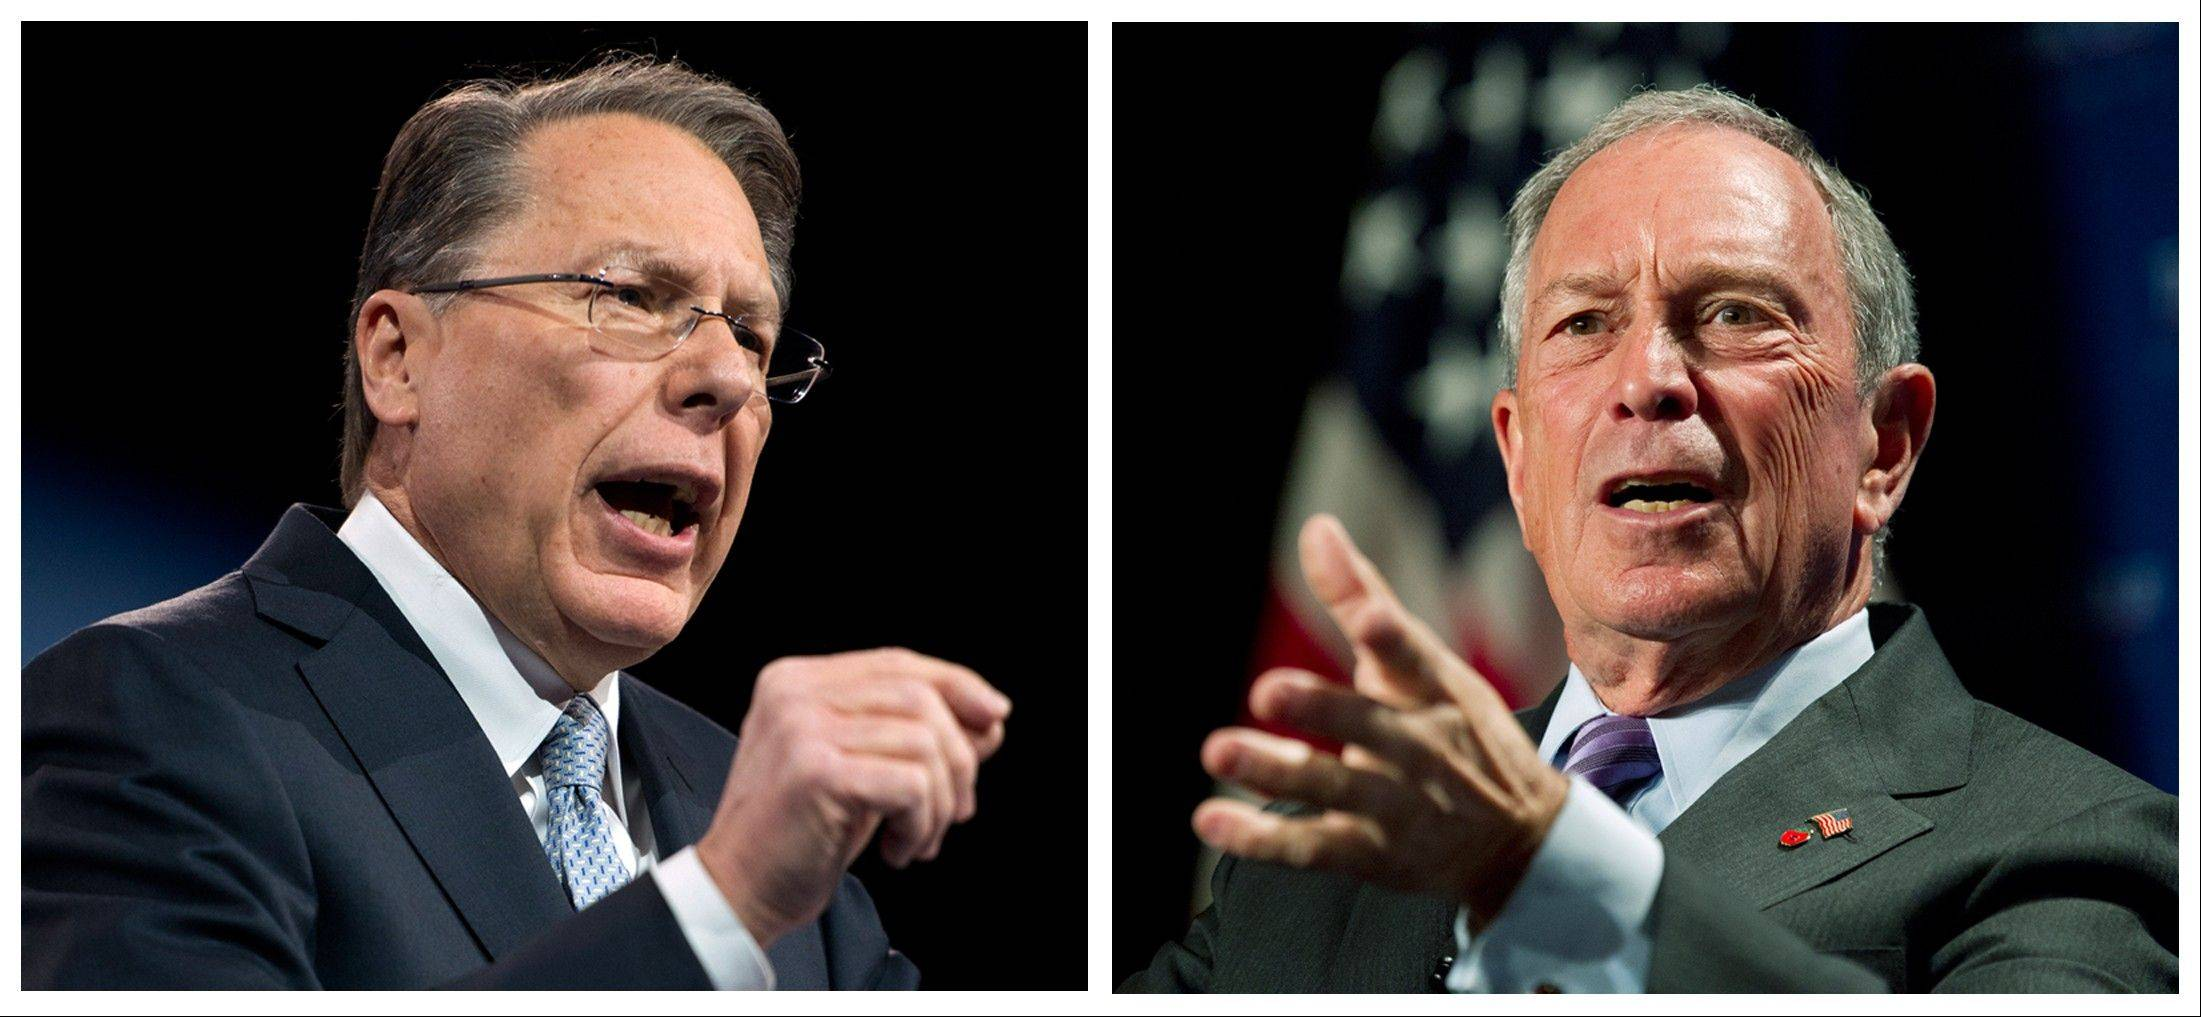 Wayne LaPierre, left, CEO of the National Rifle Association, and, at right, New York City Mayor Michael Bloomberg are two of the loudest voices in the gun debate.